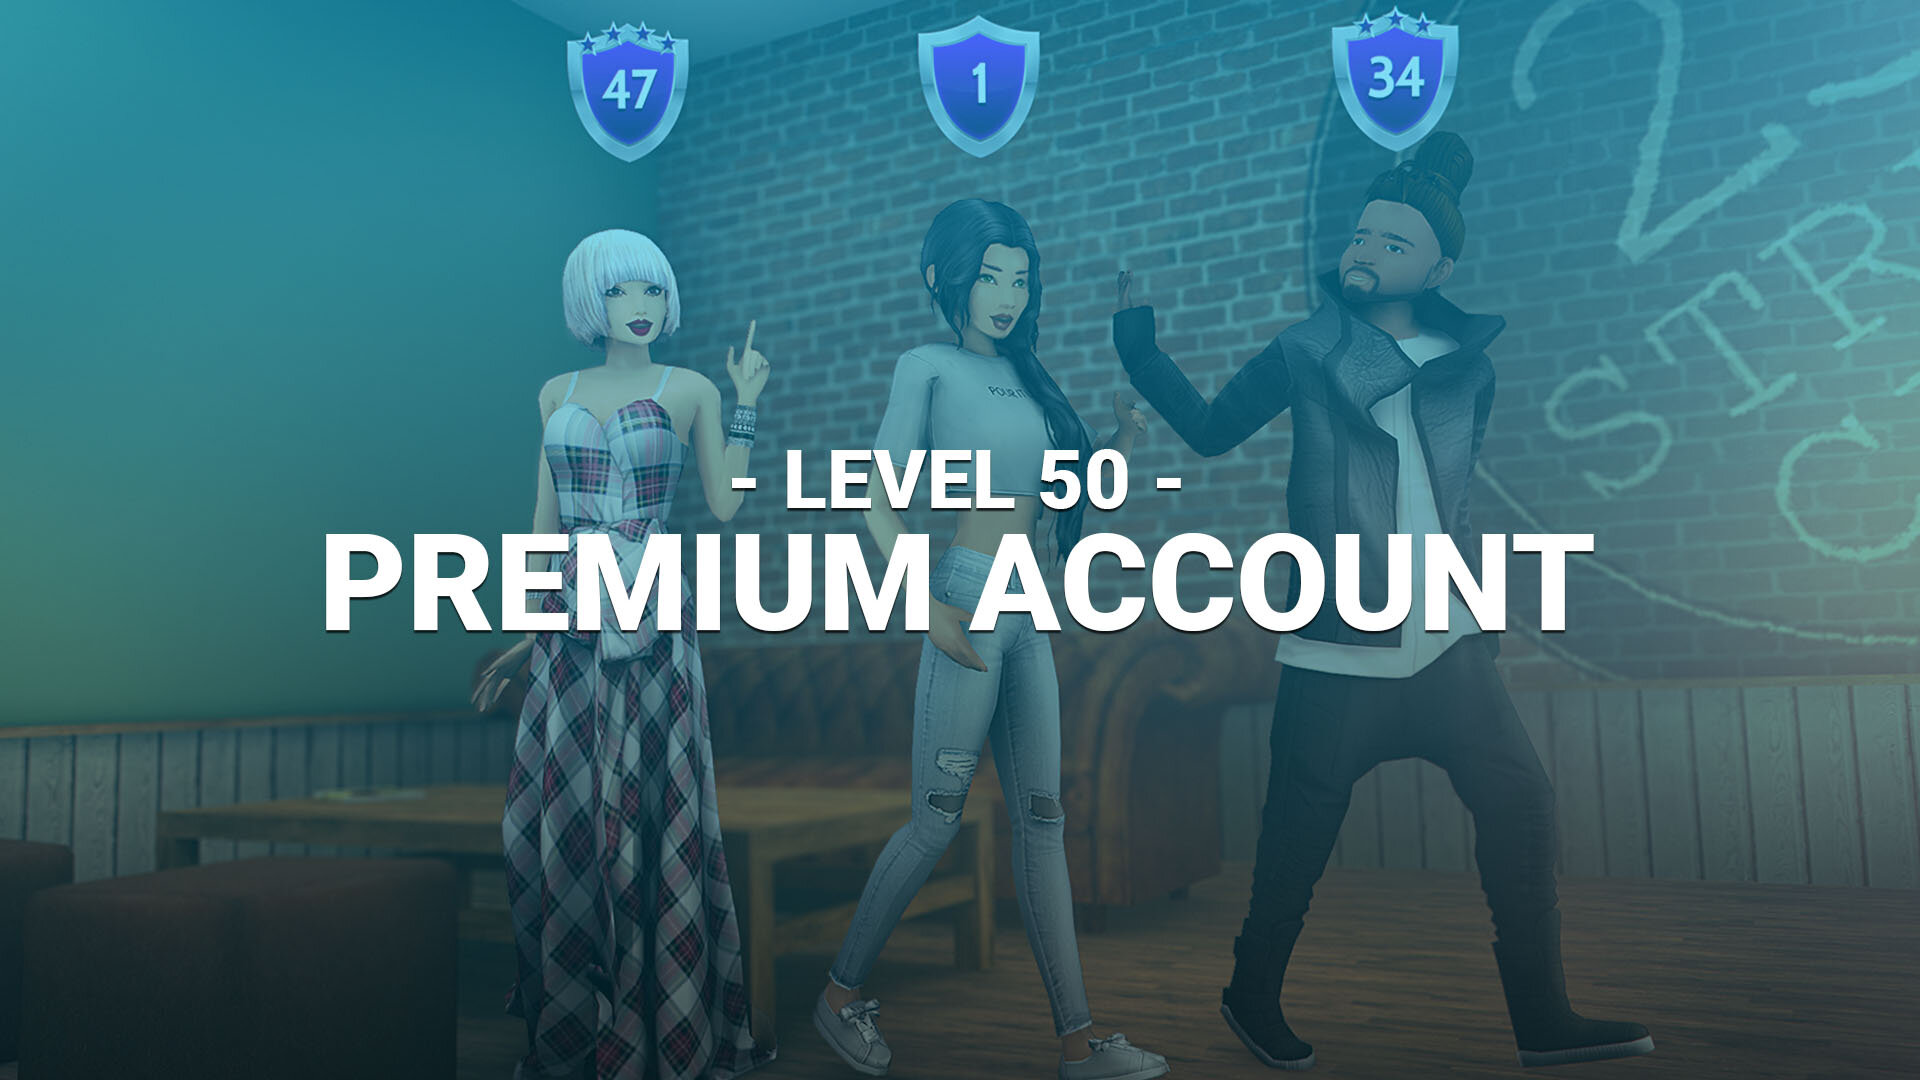 Premium Account (LVL 50)